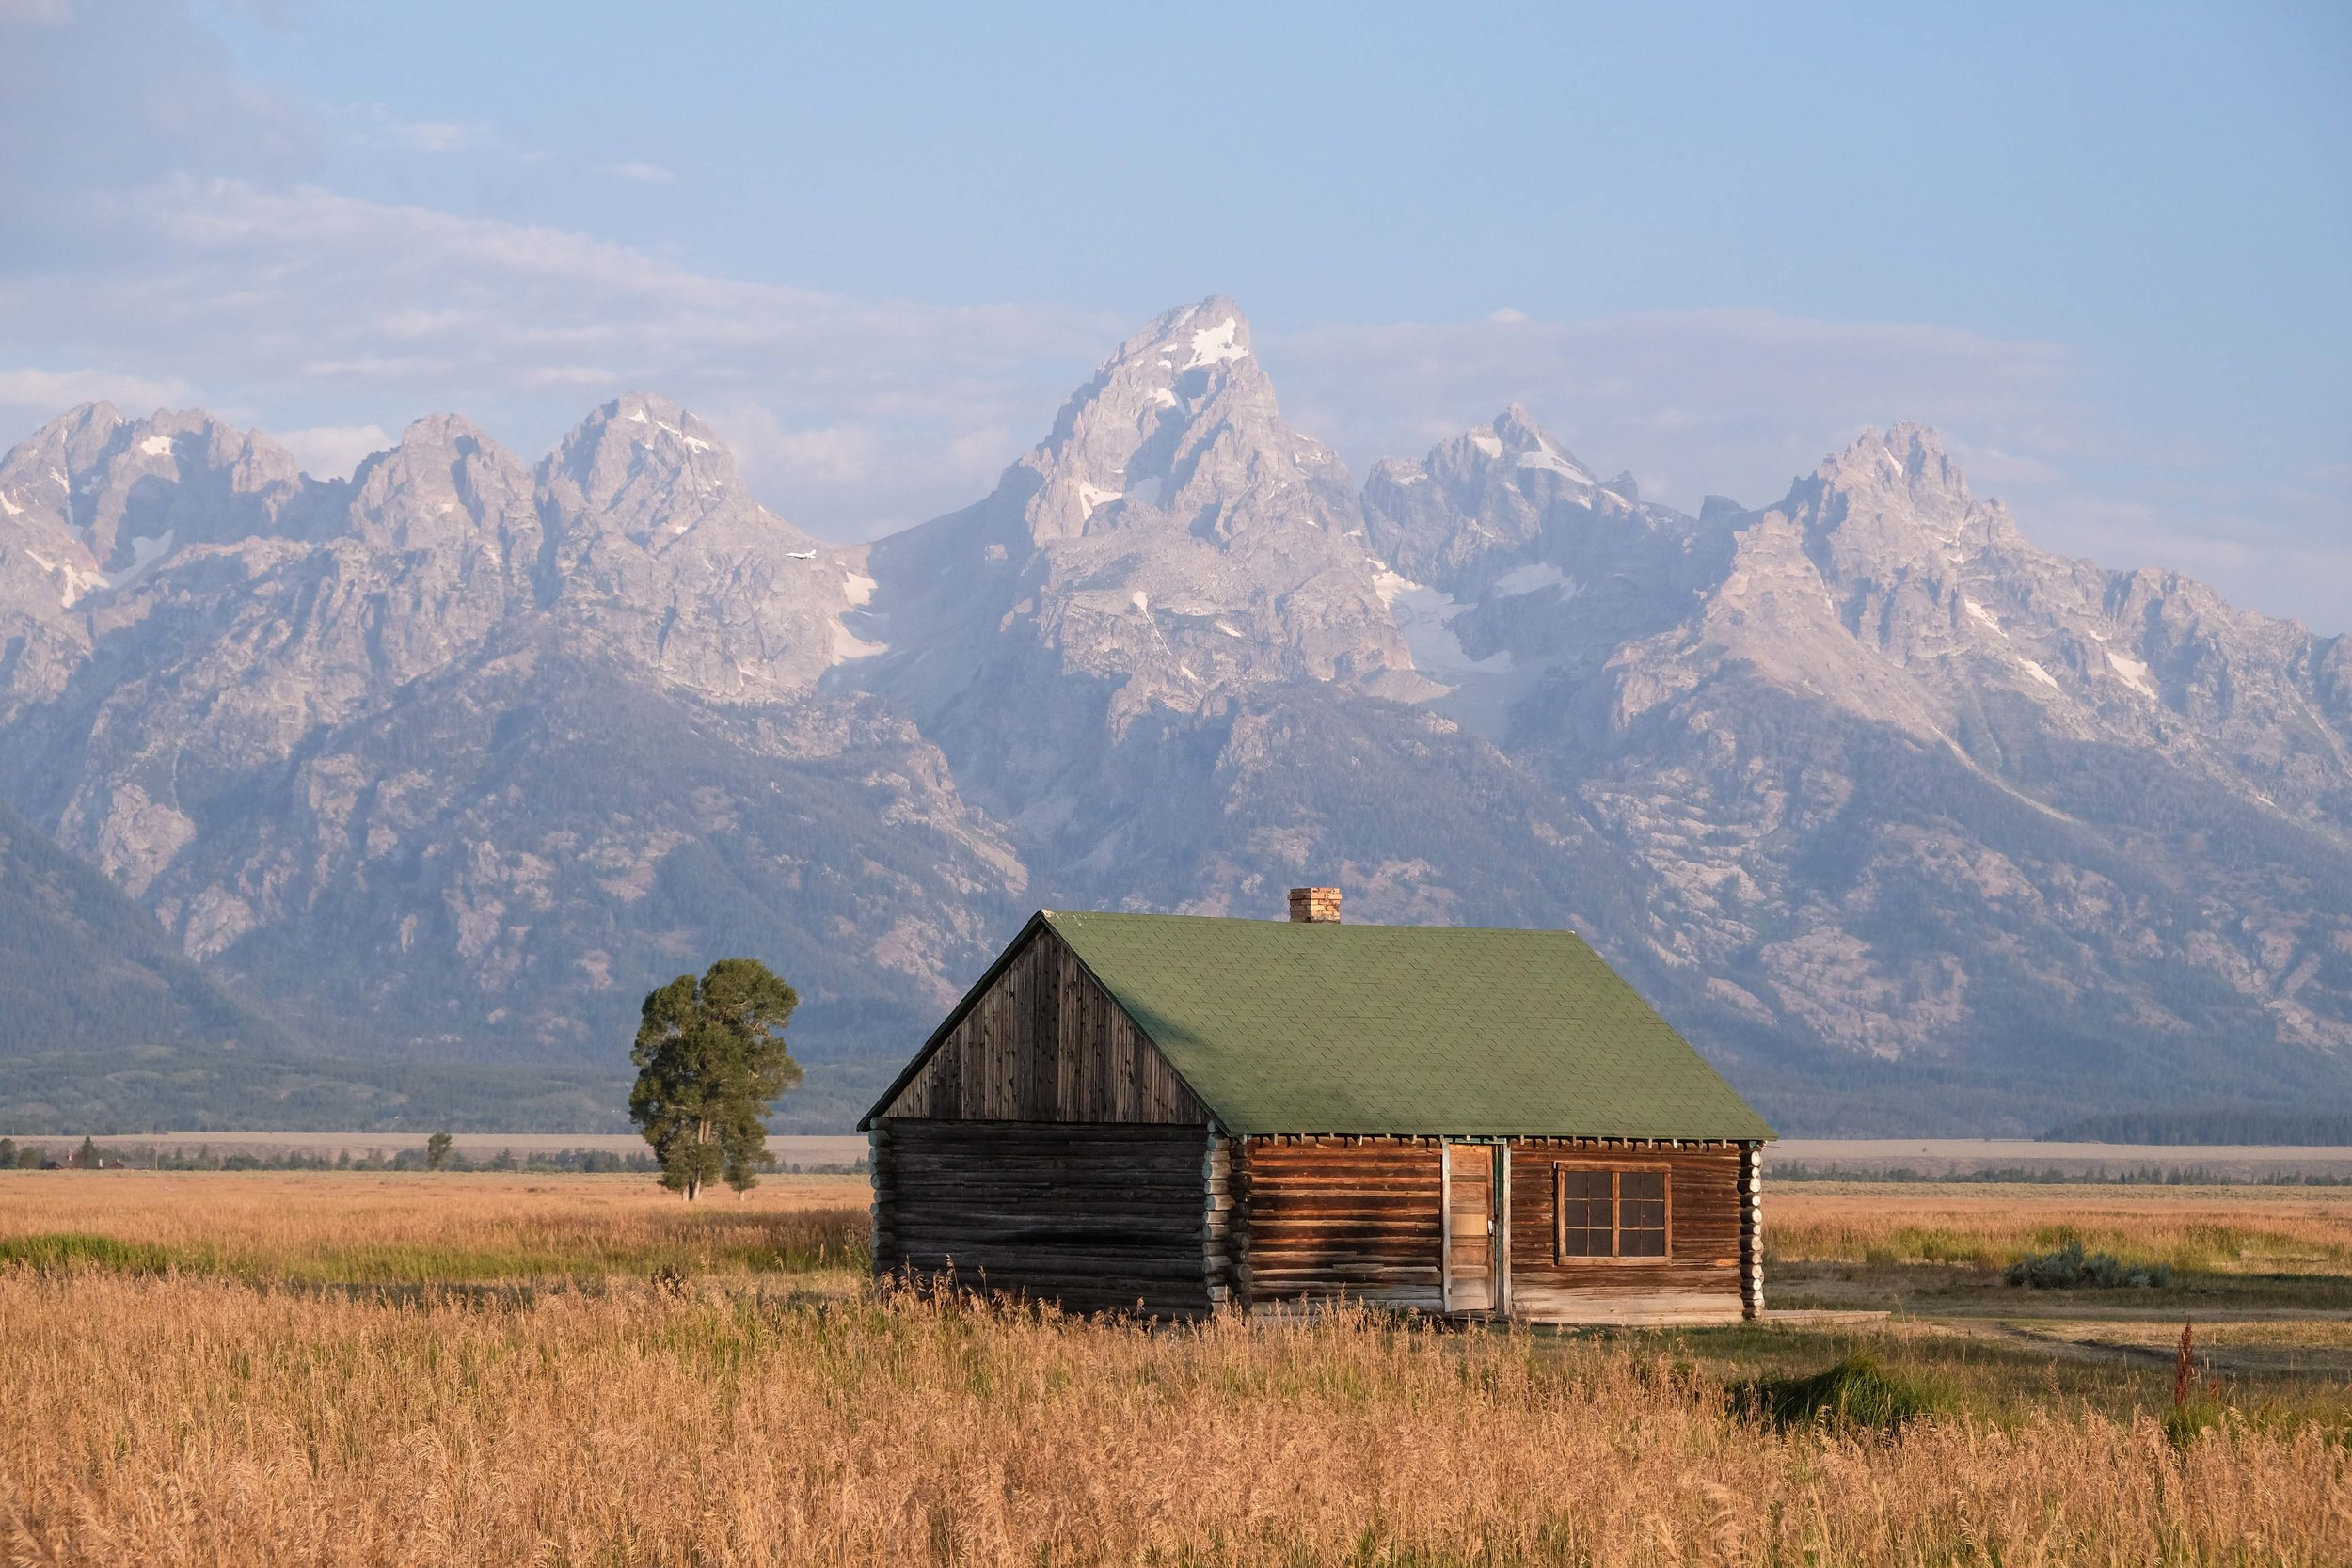 Forever West: A Week in jackson hole - September 6th, 2017